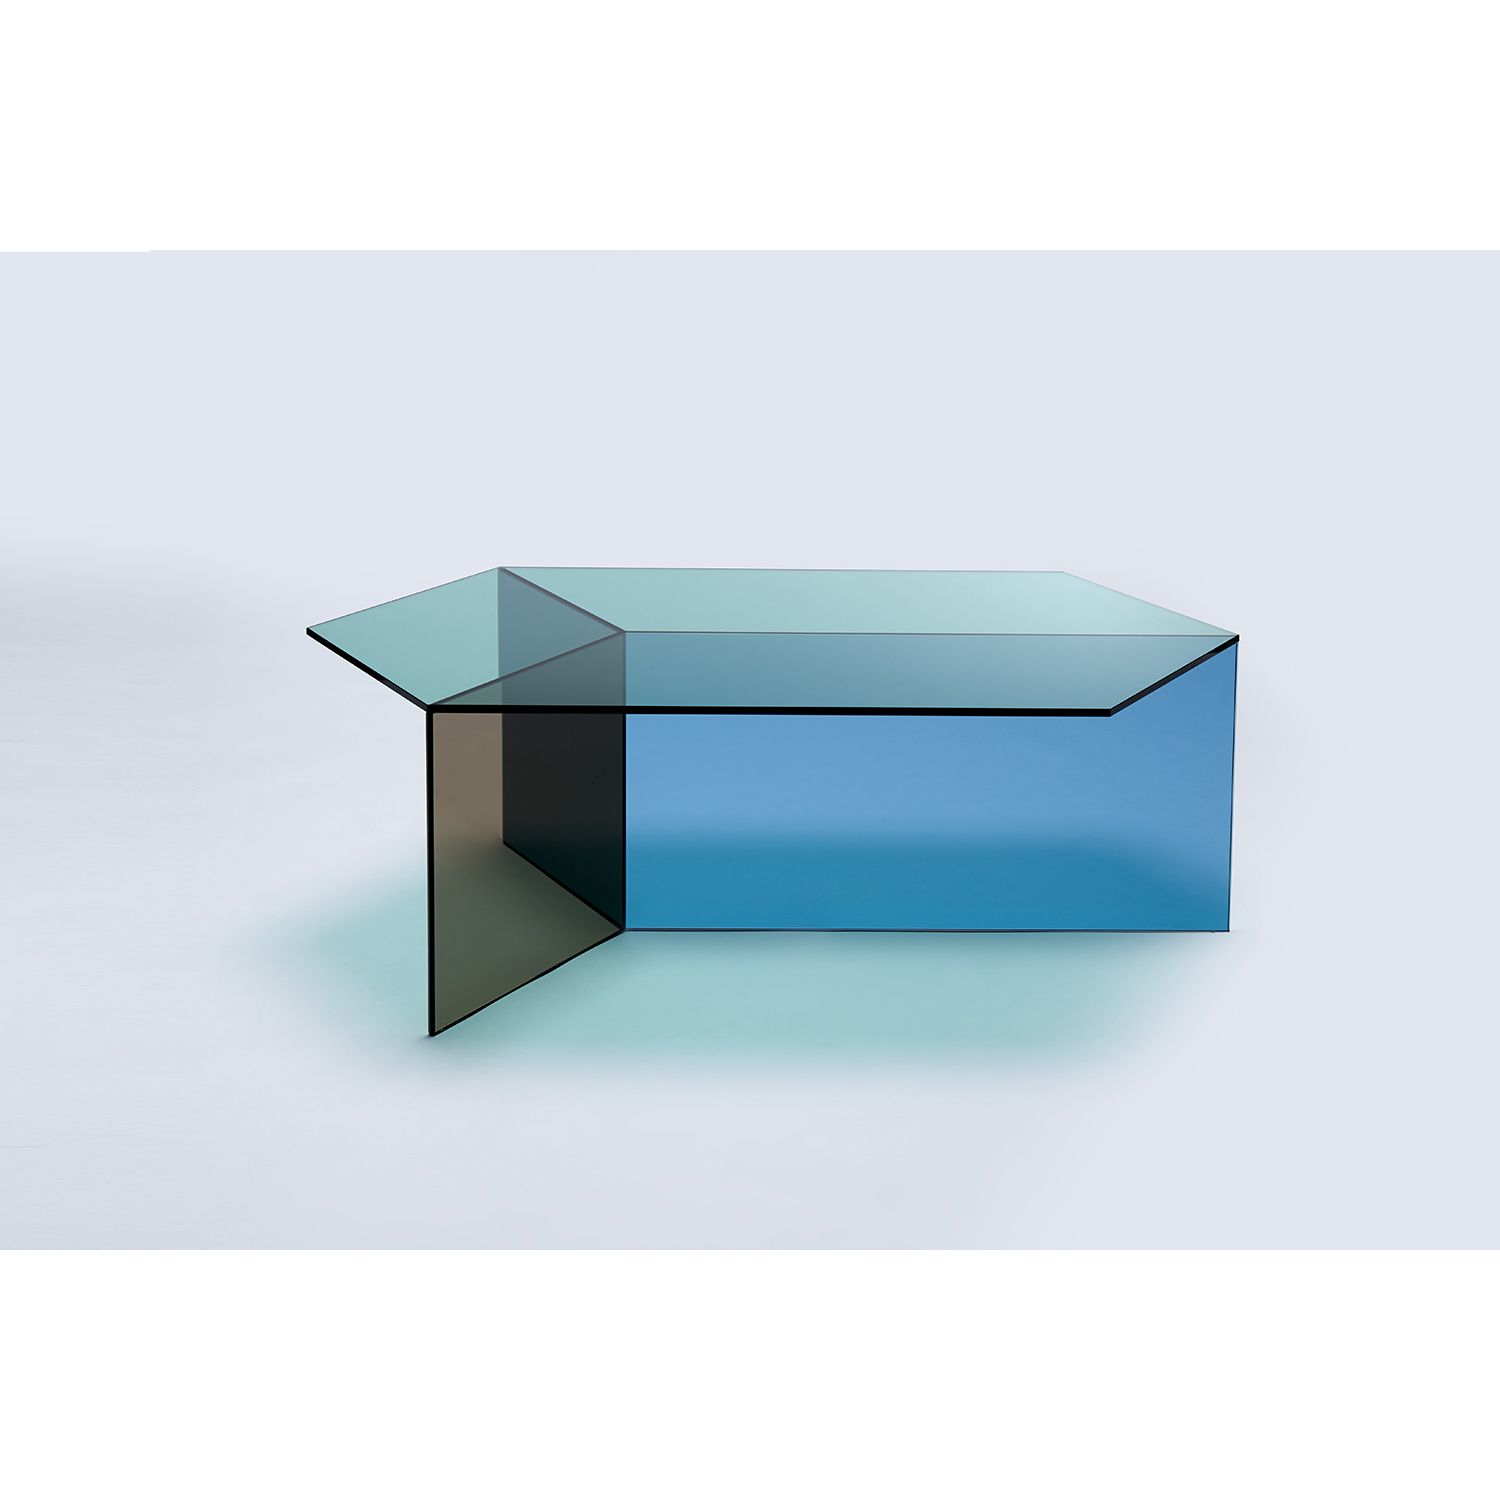 Isom Oblong Multi Siglo Moderno Colored Glass Oblong Coffee Table [ 1500 x 1500 Pixel ]